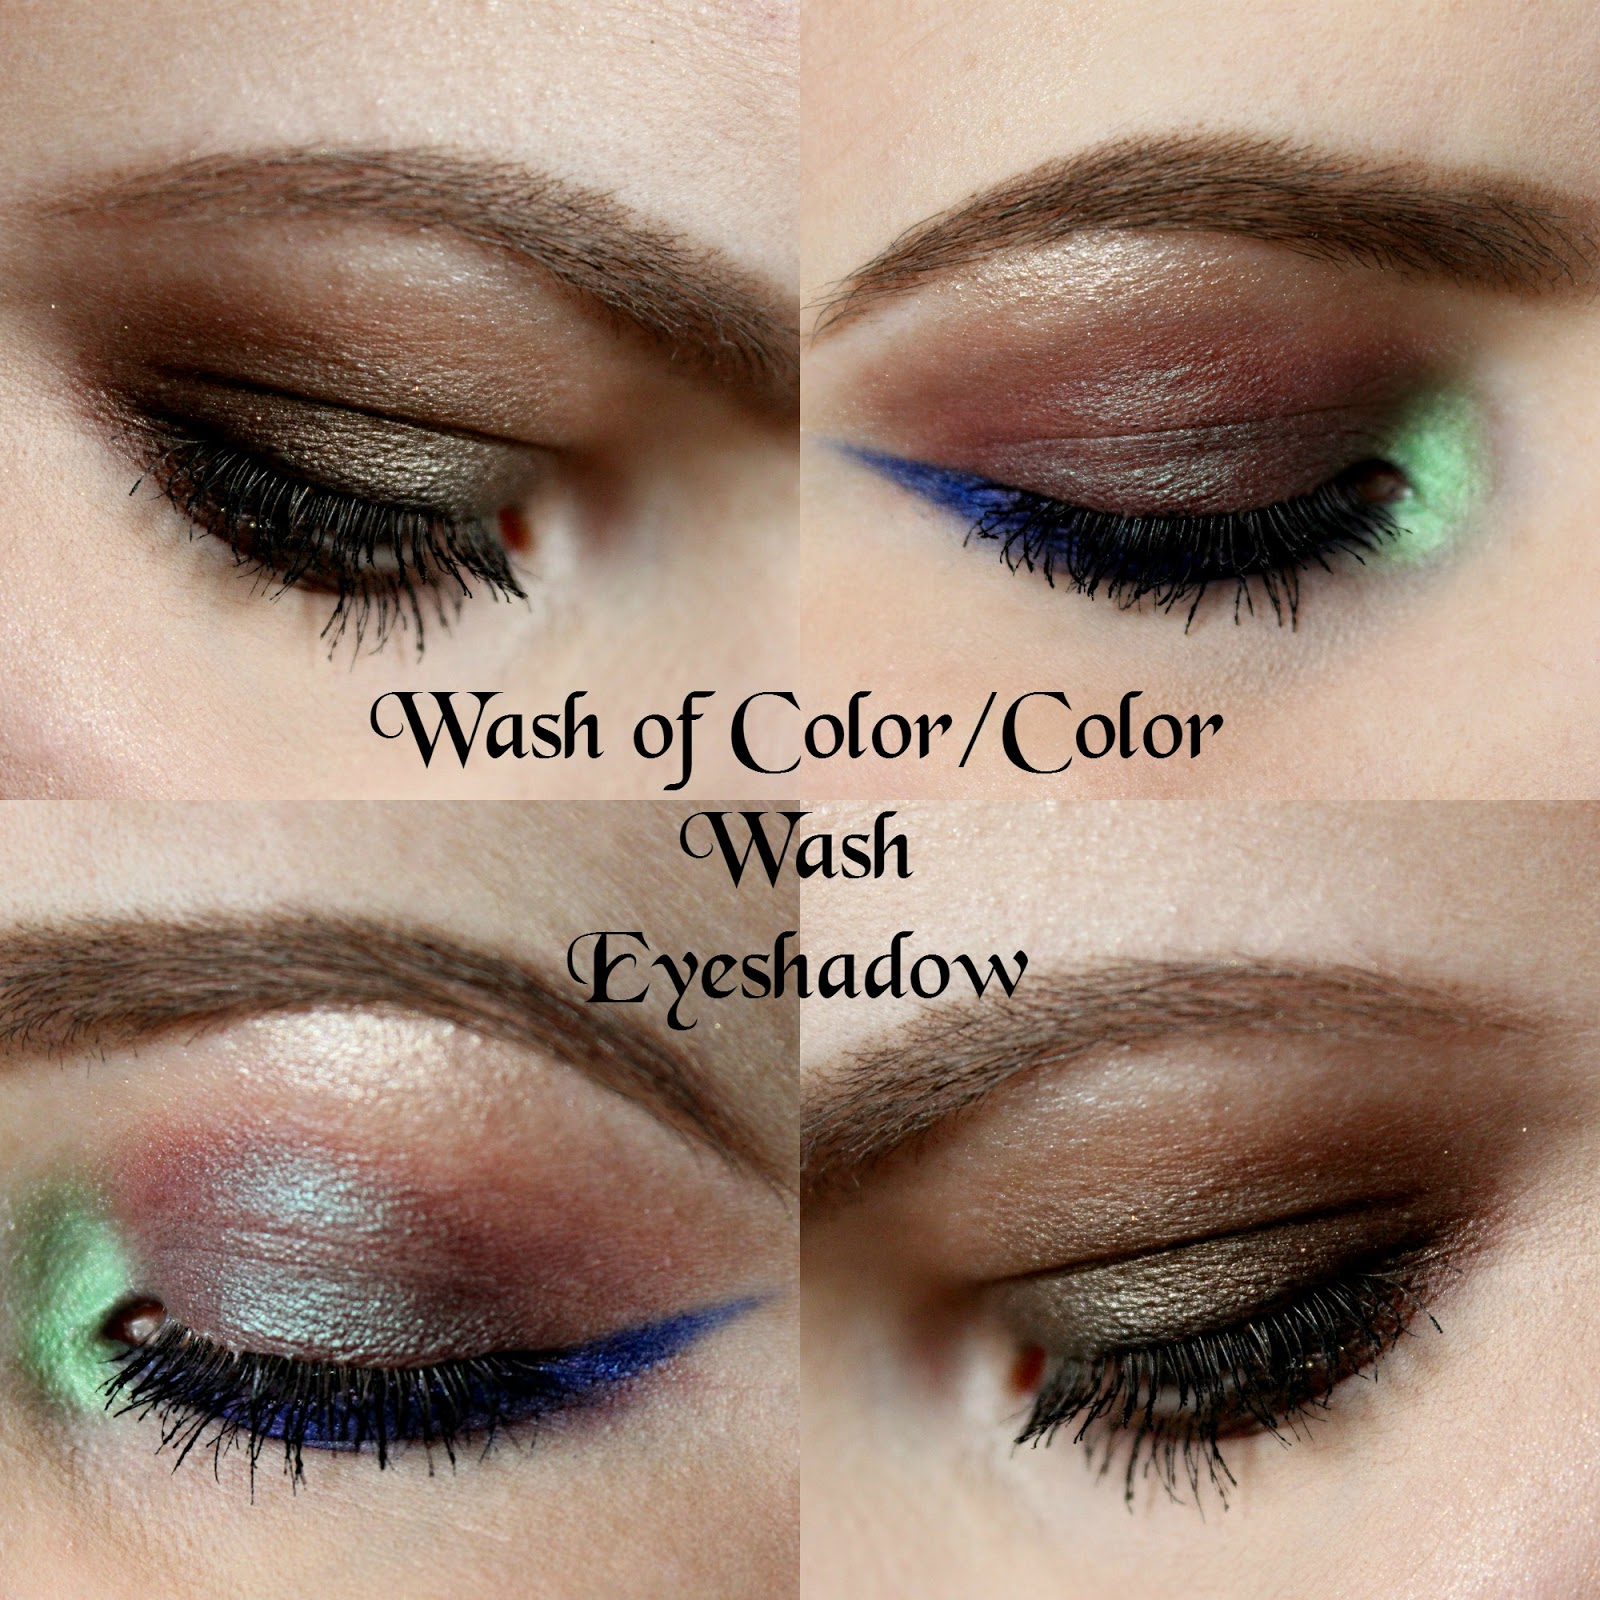 A Wash Of Color Is Usually Just A Single Eyeshadow Shade Blended Out All  Over The Lid, Or Maybe Two It's Blended Out Evenly Across The Lid And The  Edges